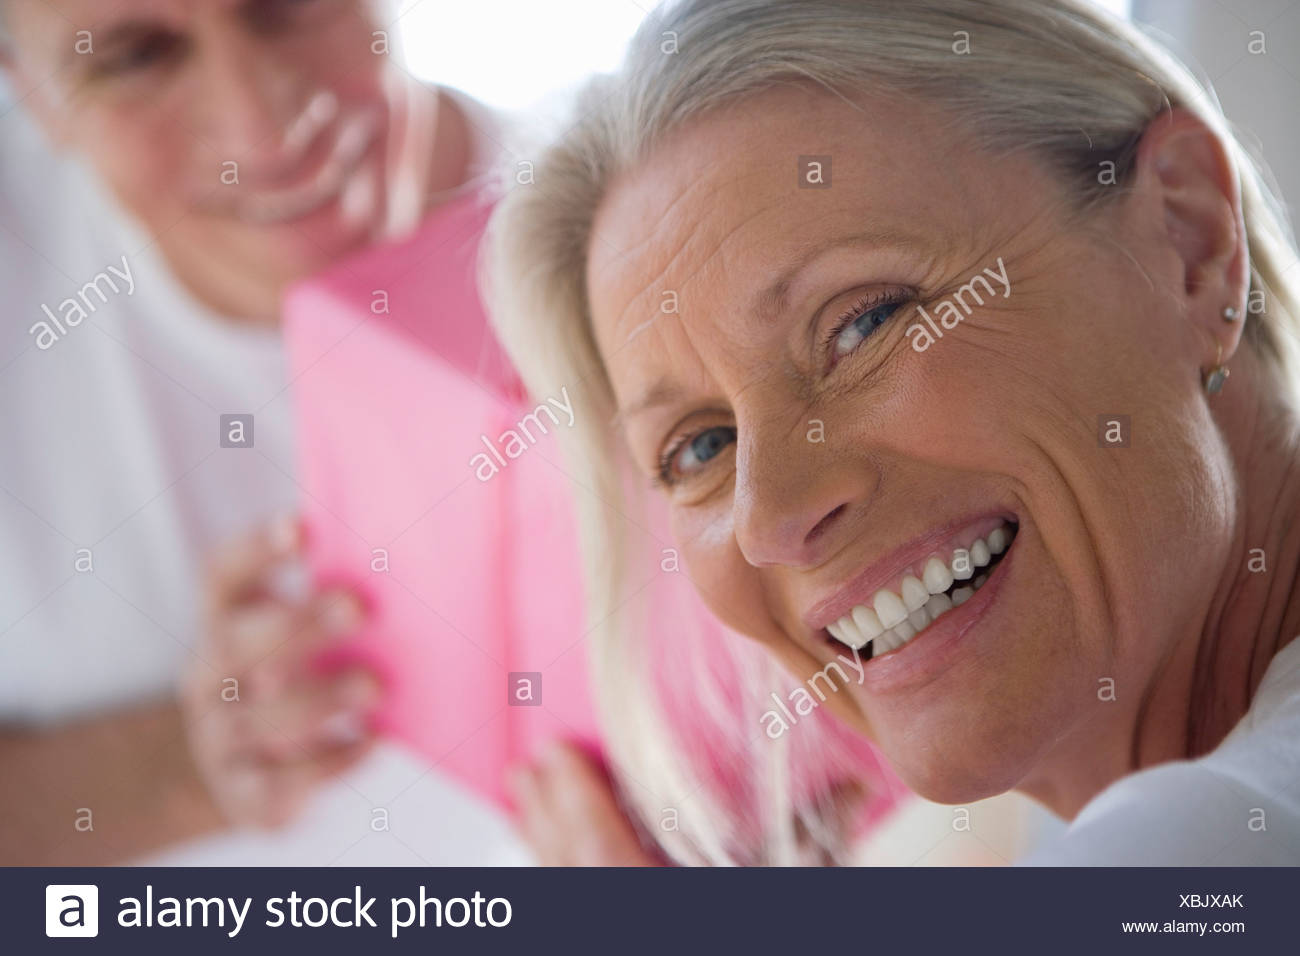 Mature man giving wife pink birthday gift, focus on woman looking over shoulder in foreground, smiling, close-up, portrait - Stock Image